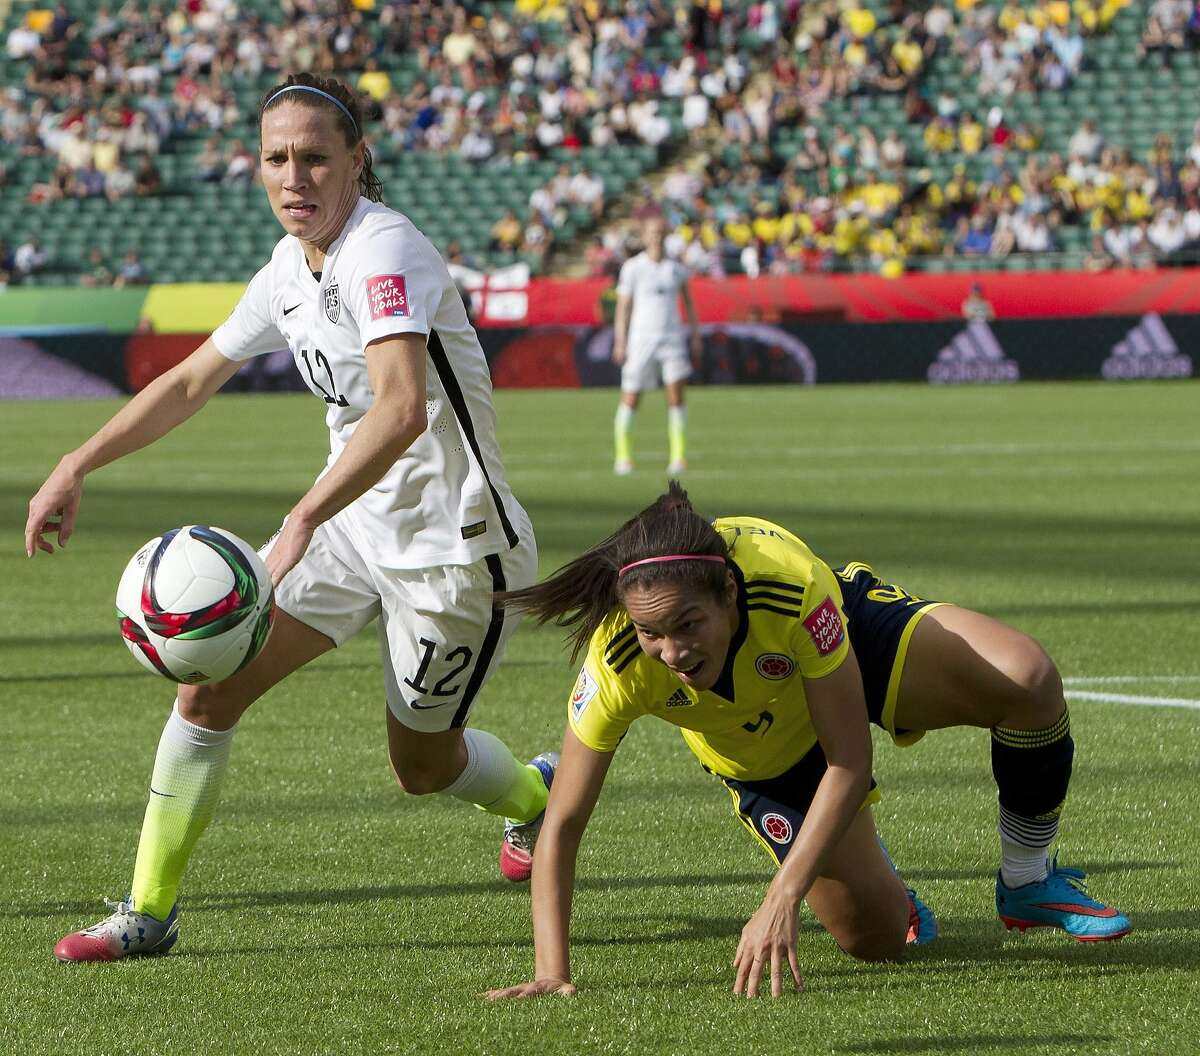 FILE - In this June 22, 2015, file photo, United States' Lauren Holiday (12) and Colombia's Orianica Velasquez, right, battle for the ball during the first half of a second round game at the FIFA Women's World Cup in Edmonton, Alberta, Canada. U.S. soccer formally announced Monday, July 27, 2015, that midfielders Shannon Boxx and Holiday will retire from the U.S. national team following a victory tour to celebrate the Women's World Cup title. (Jason Franson/The Canadian Press via AP, File) MANDATORY CREDIT